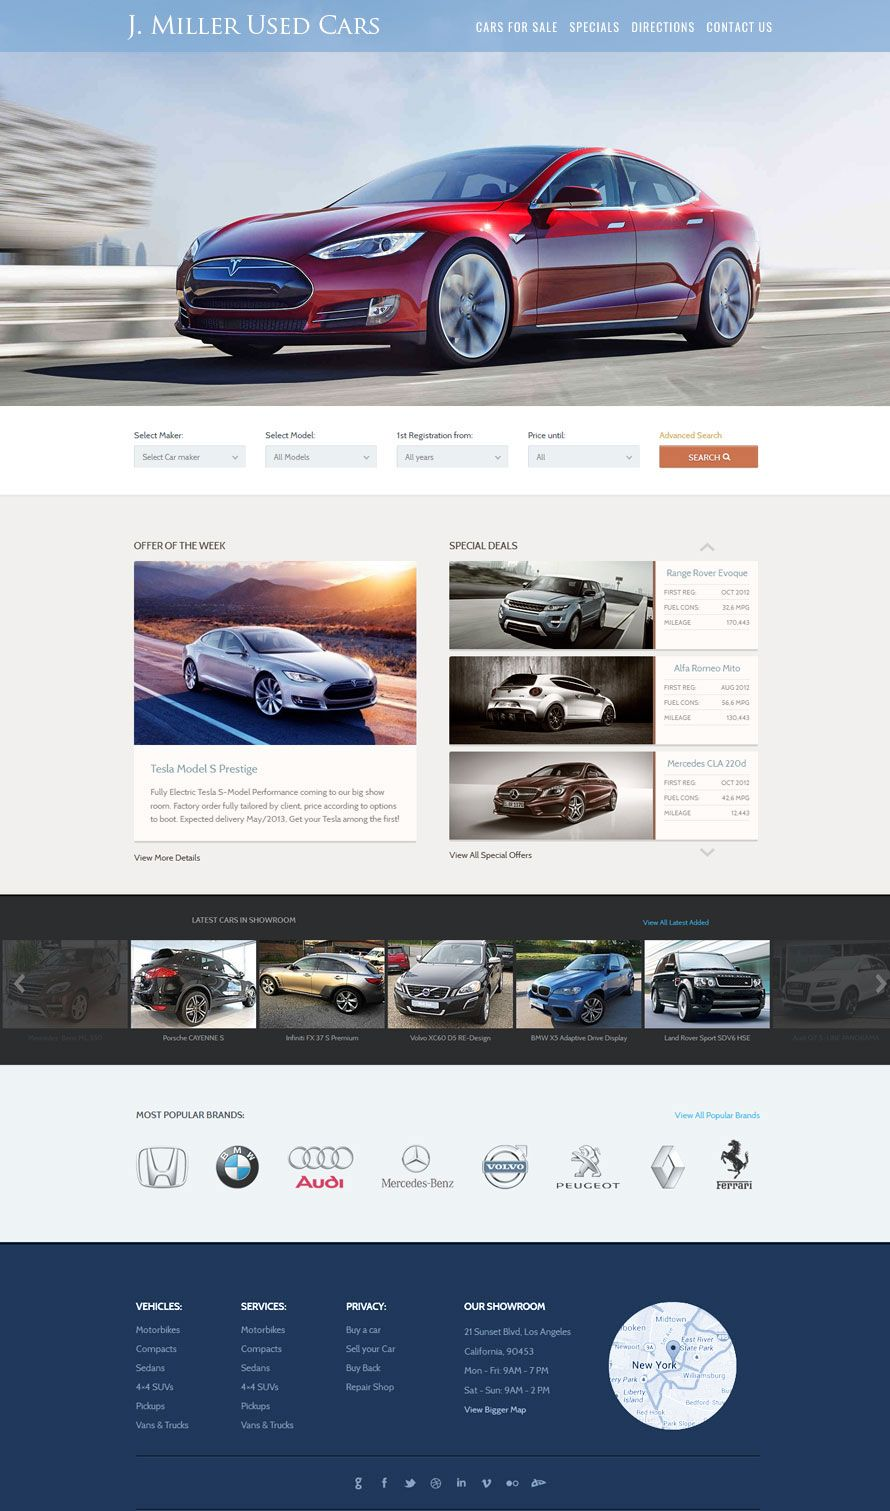 Used car dealer website design with the online marketing power of new car dealerships market your used car inventory online with ease